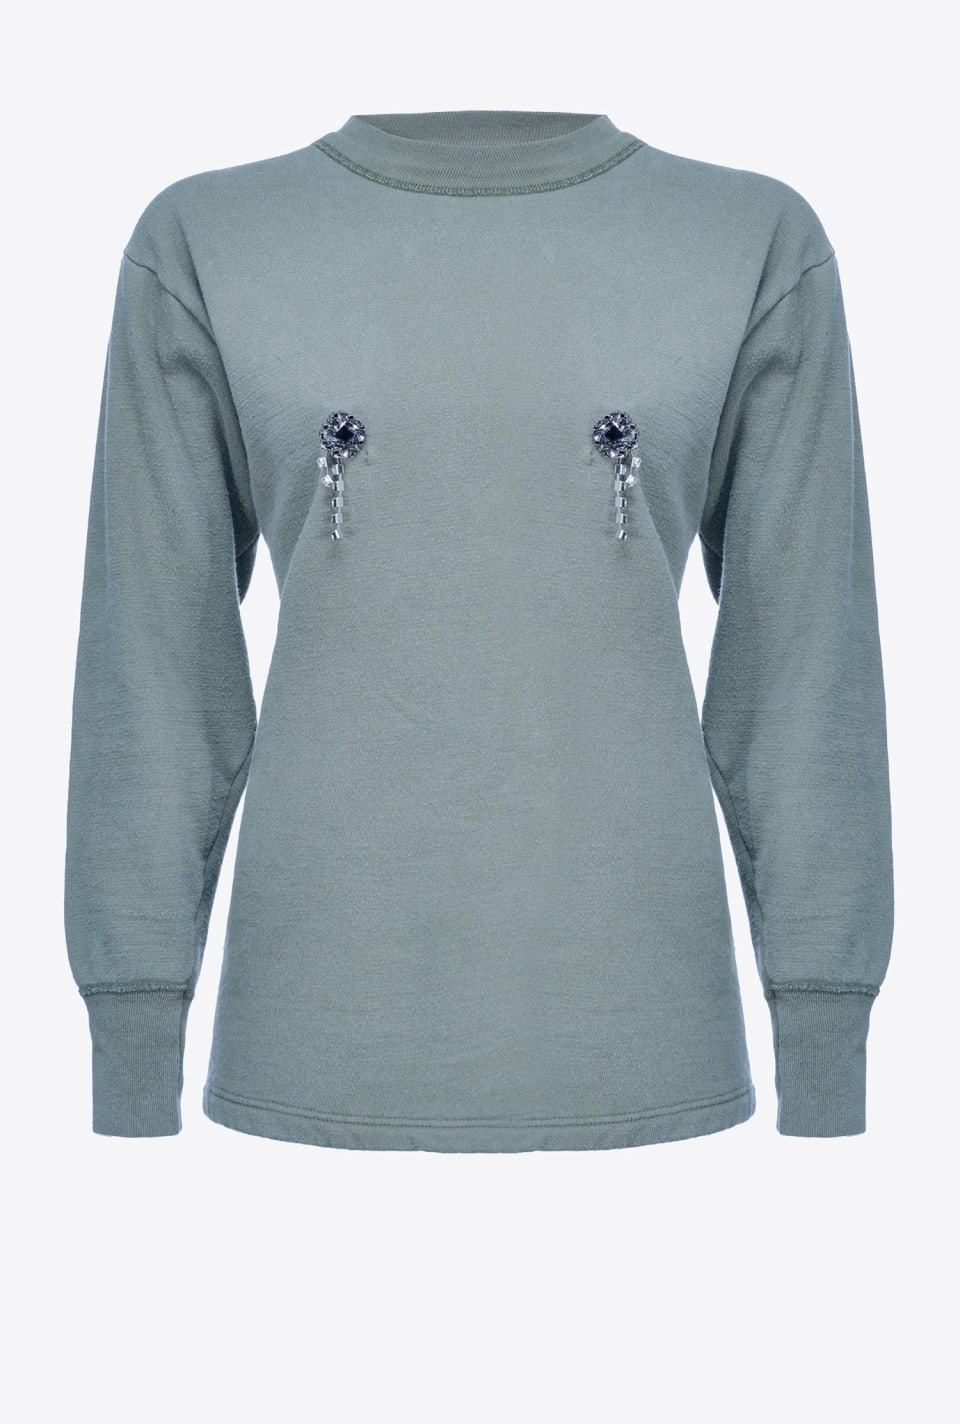 REIMAGINE bejewelled-button sweatshirt - Pinko